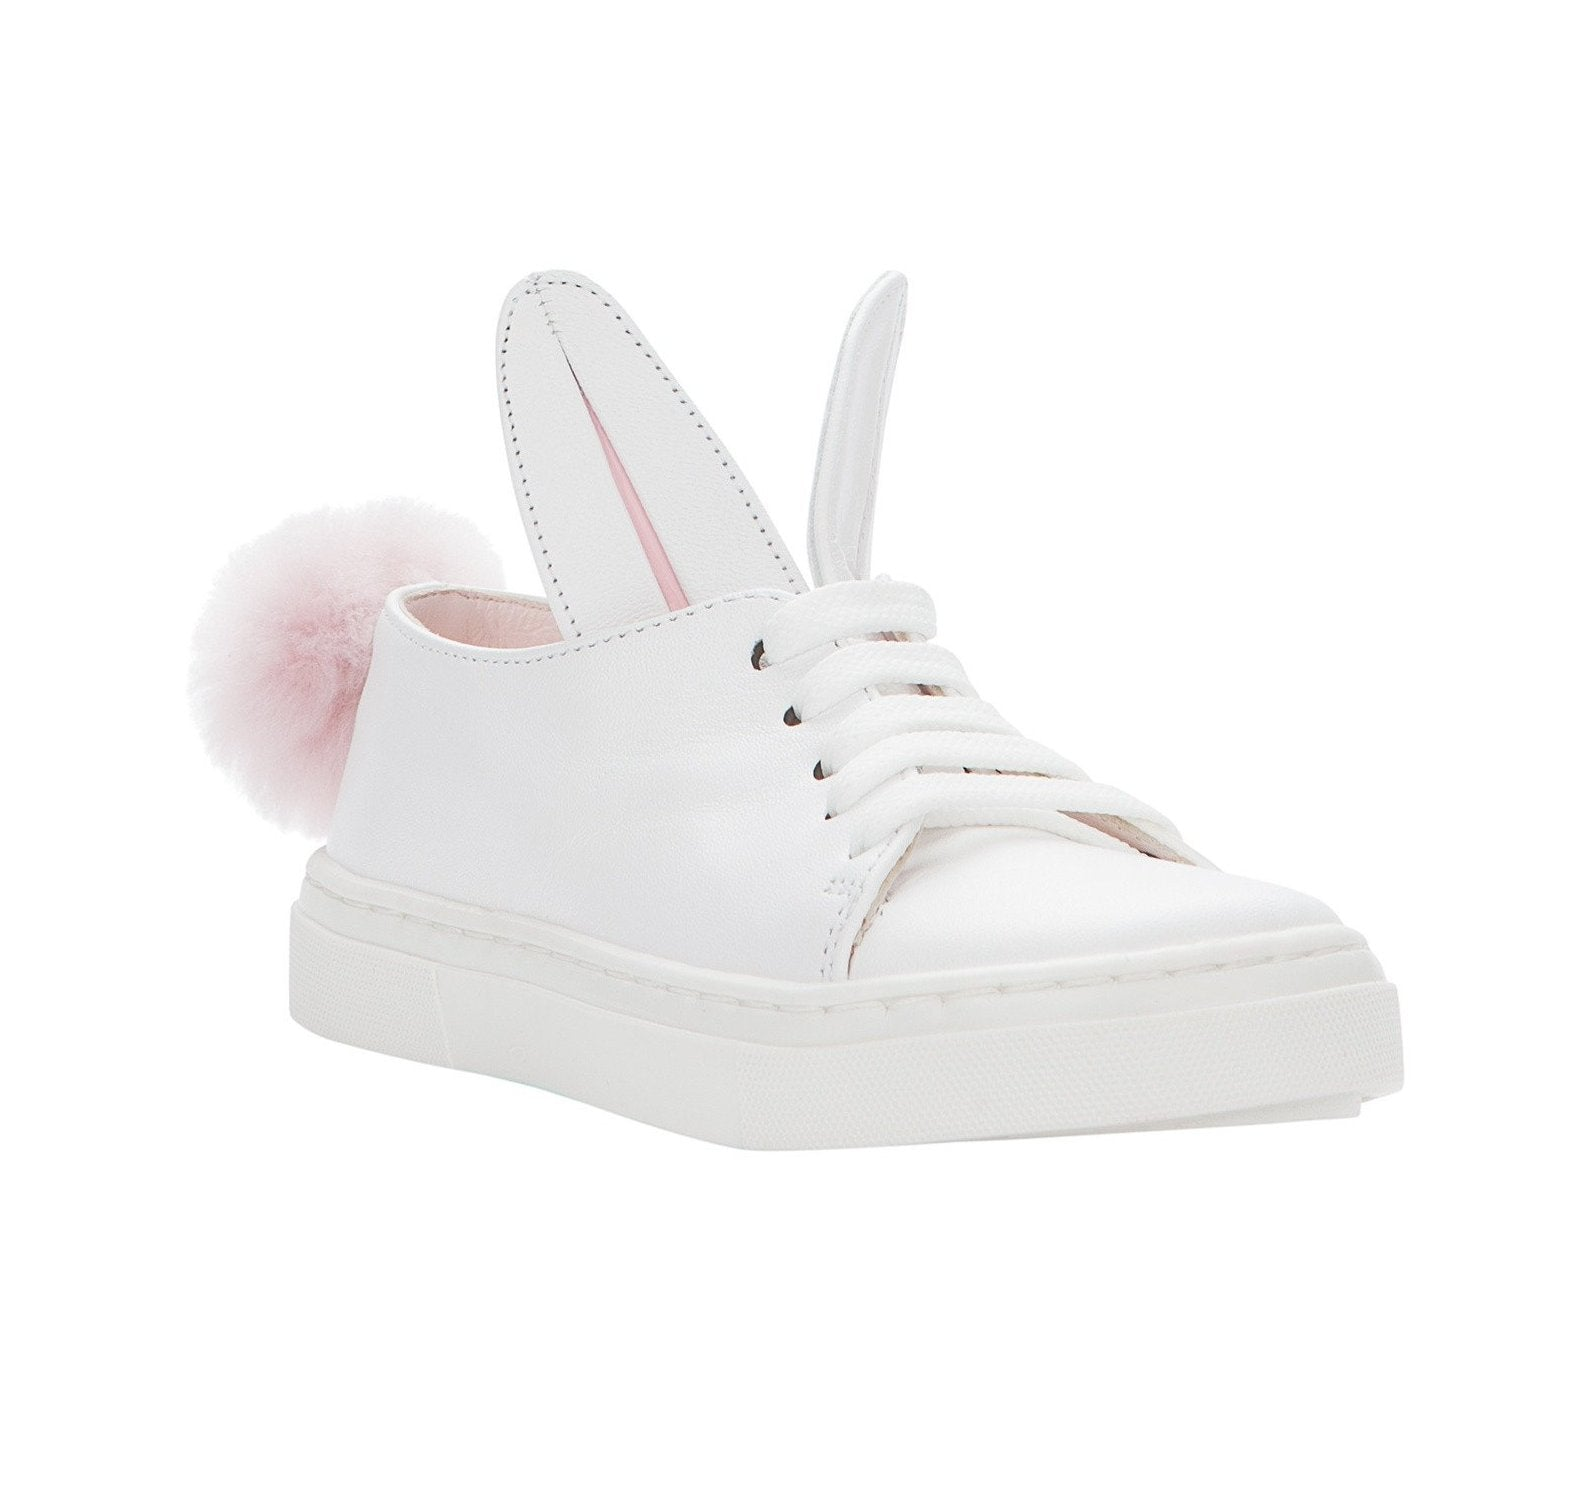 Minna Parikka Bunny Tail Sneakers on DLK